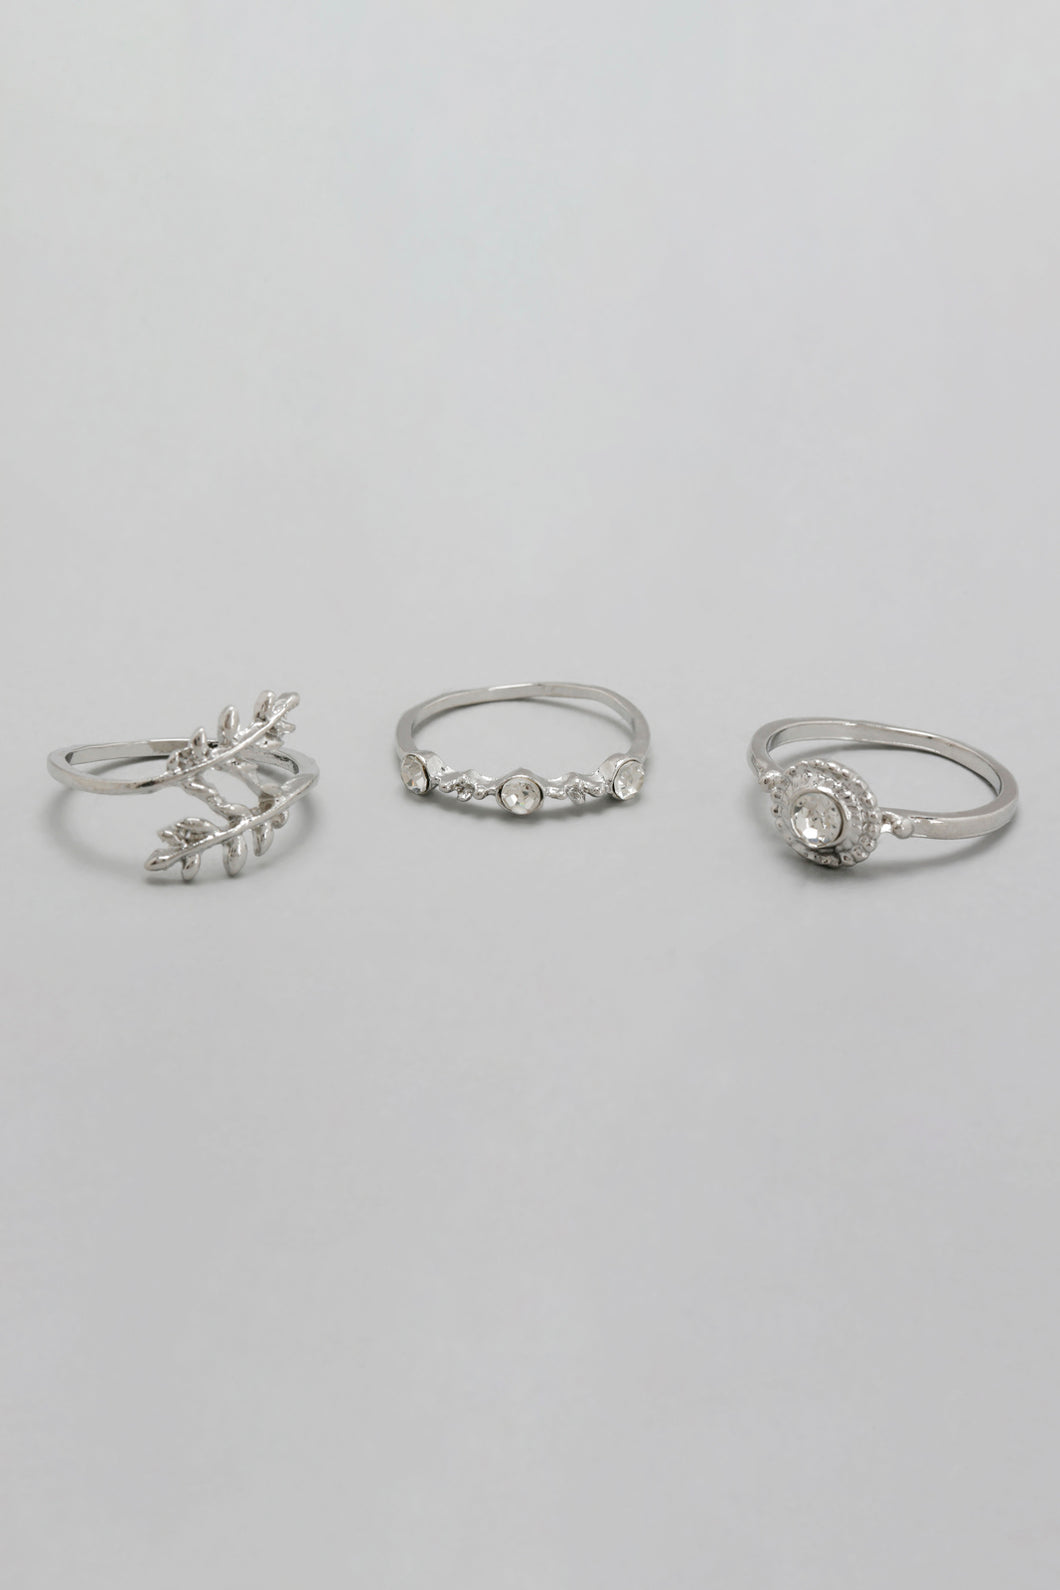 Silver Rhinestone Rings (Set of 3)